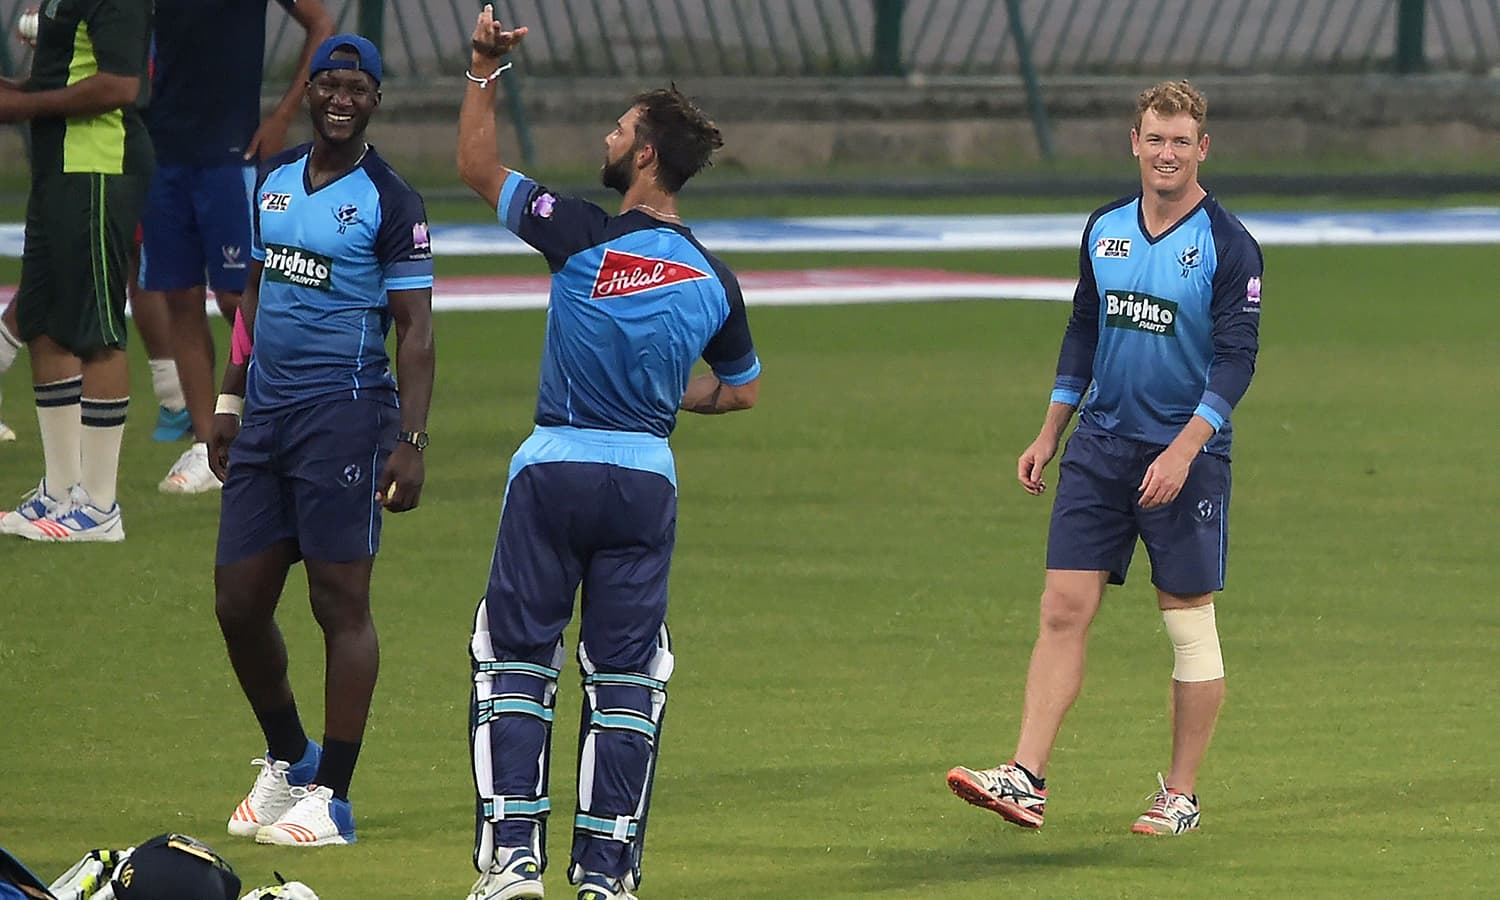 World XI cricketers George Bailey, Darren Sammy and Grant Elliott take part in a practice session at the Gaddafi Stadium.— AFP